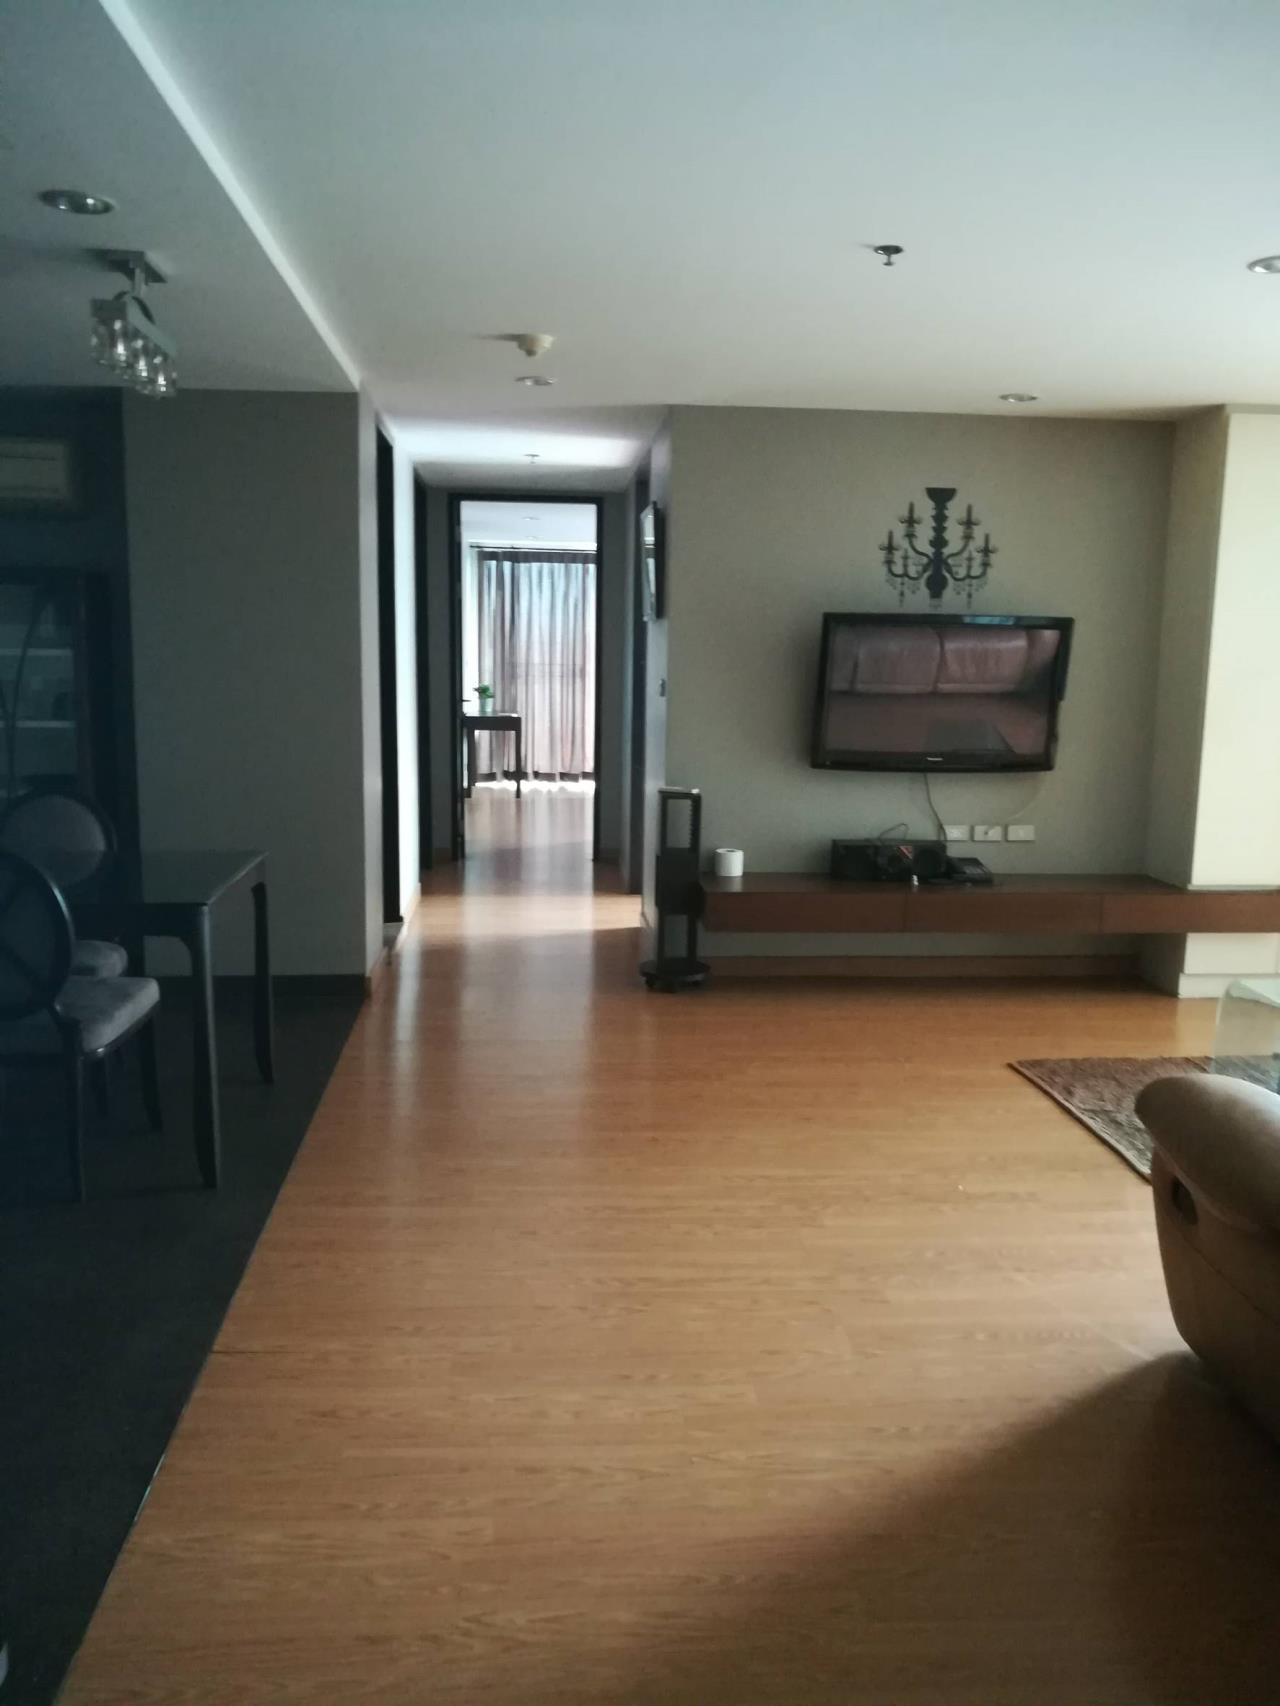 Professional One Service Agency's Beautiful 3 bedroom condo 120 sq.m BTS Thonglo 2